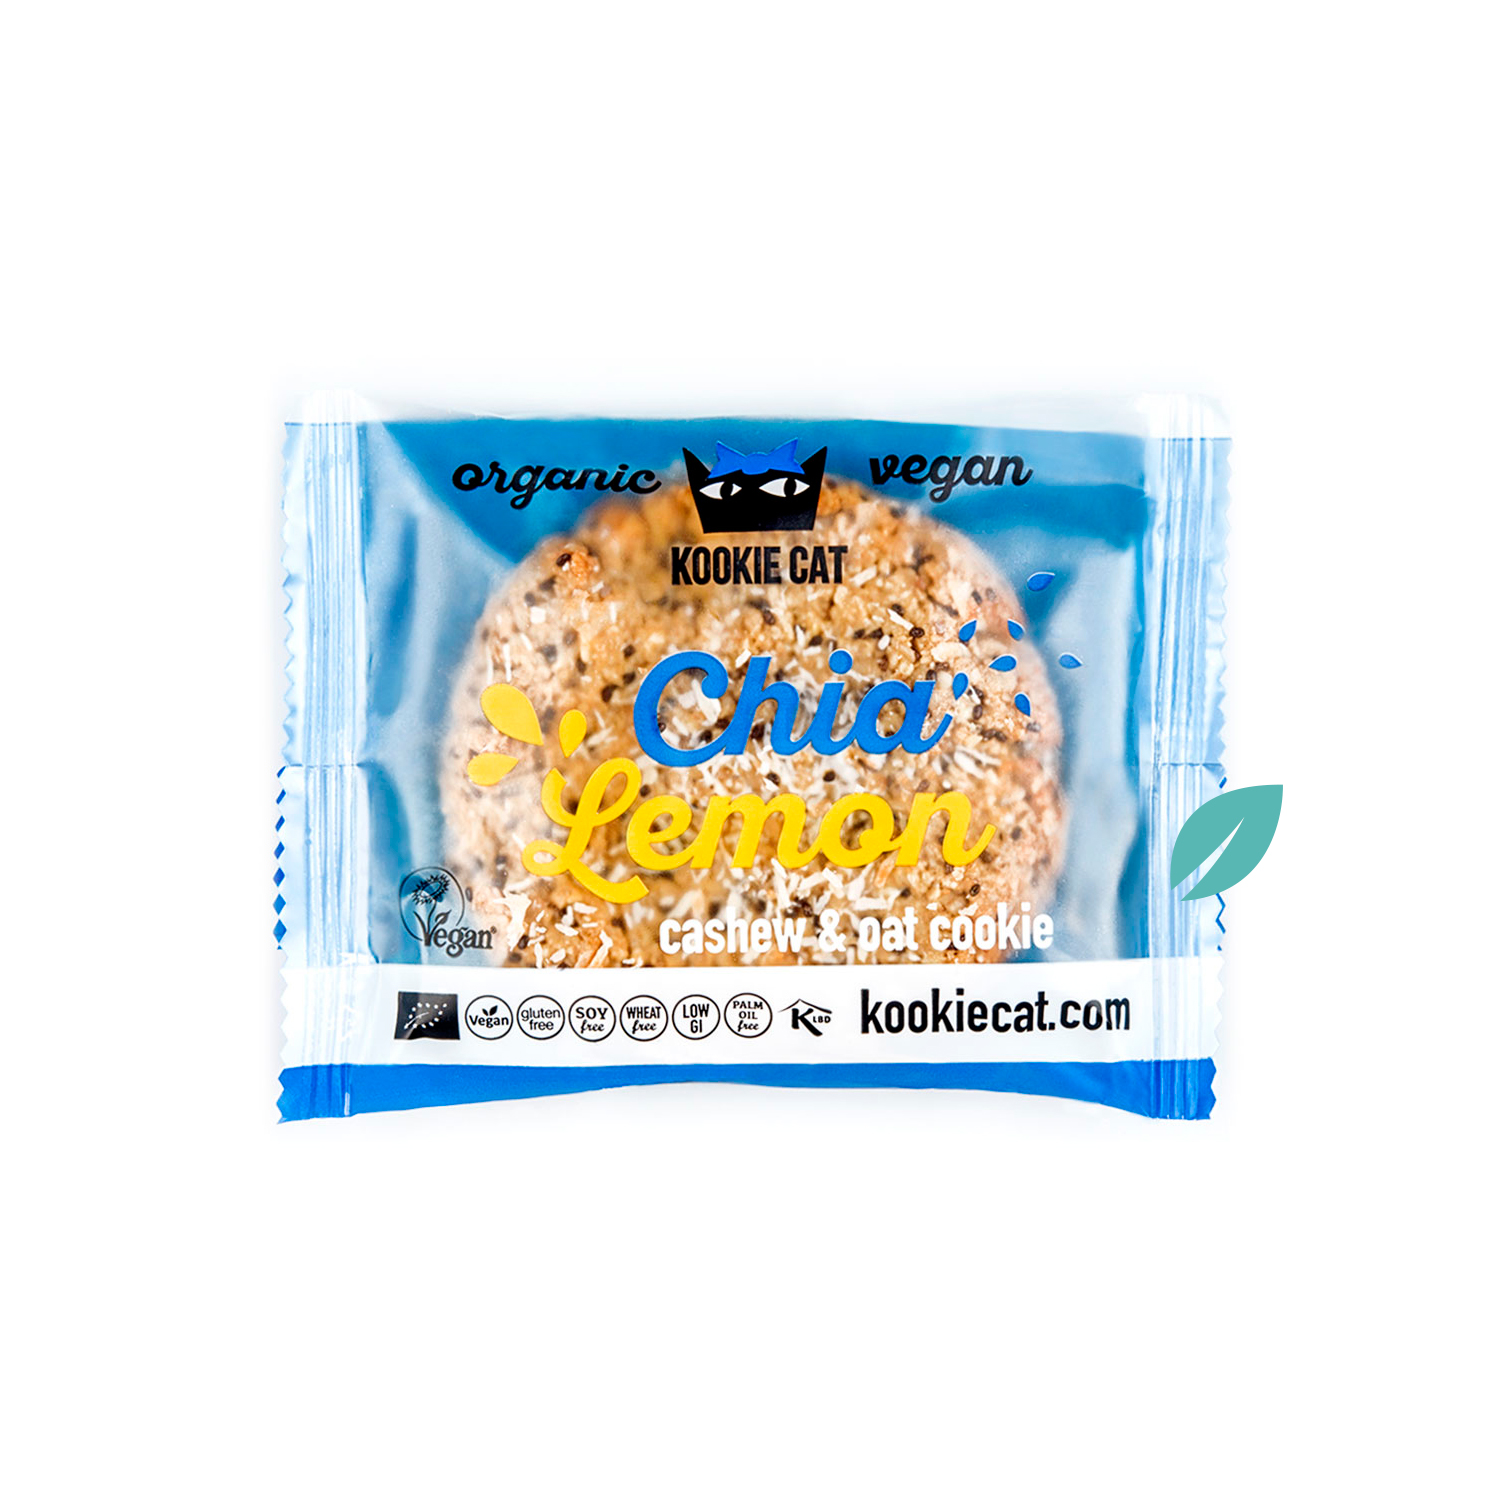 Galleta chia limon sin gluten